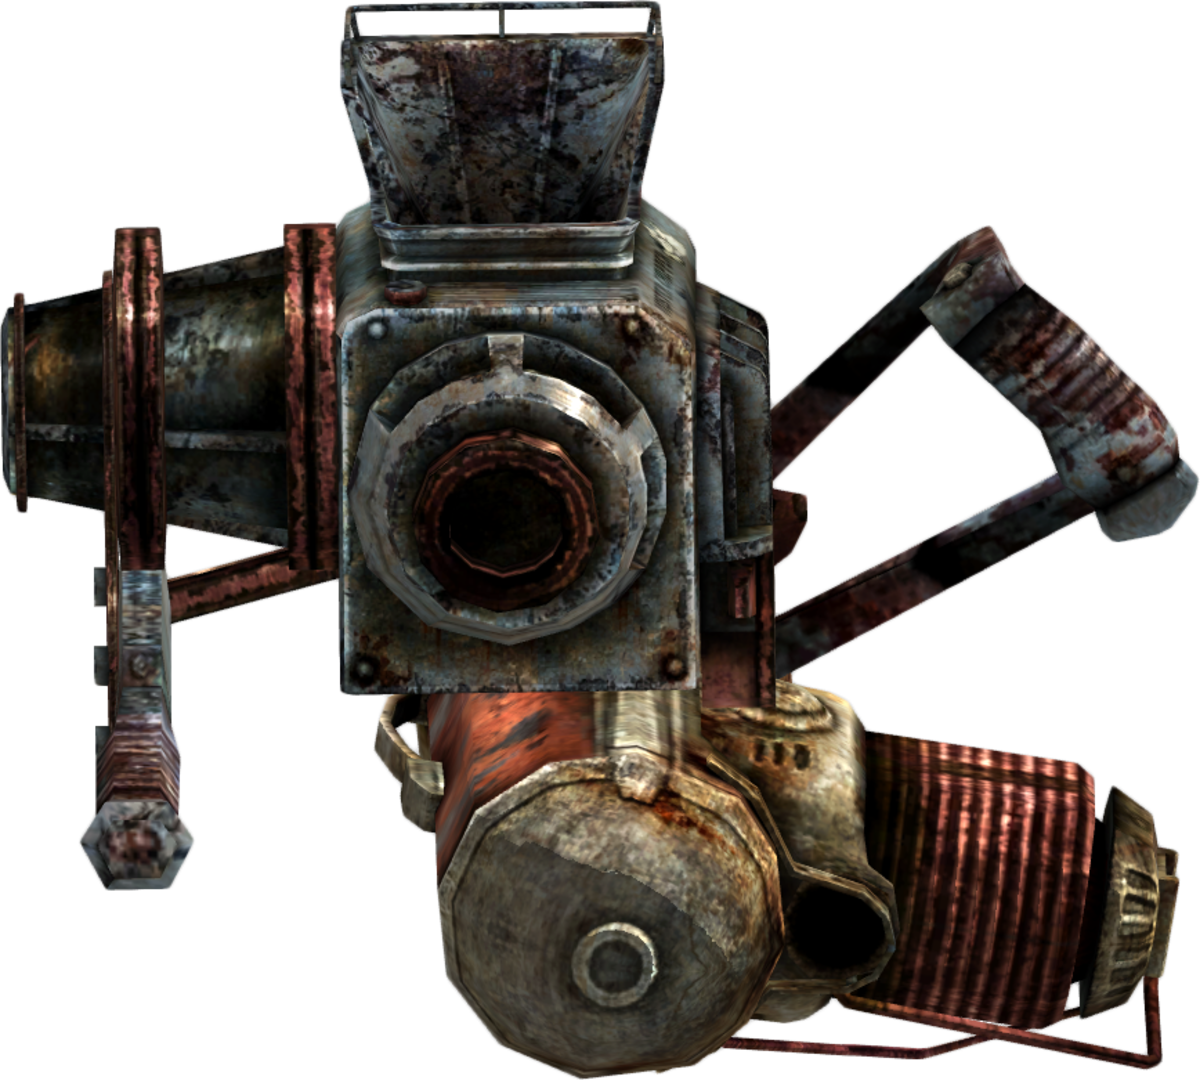 Rock-it launcher from Fallout